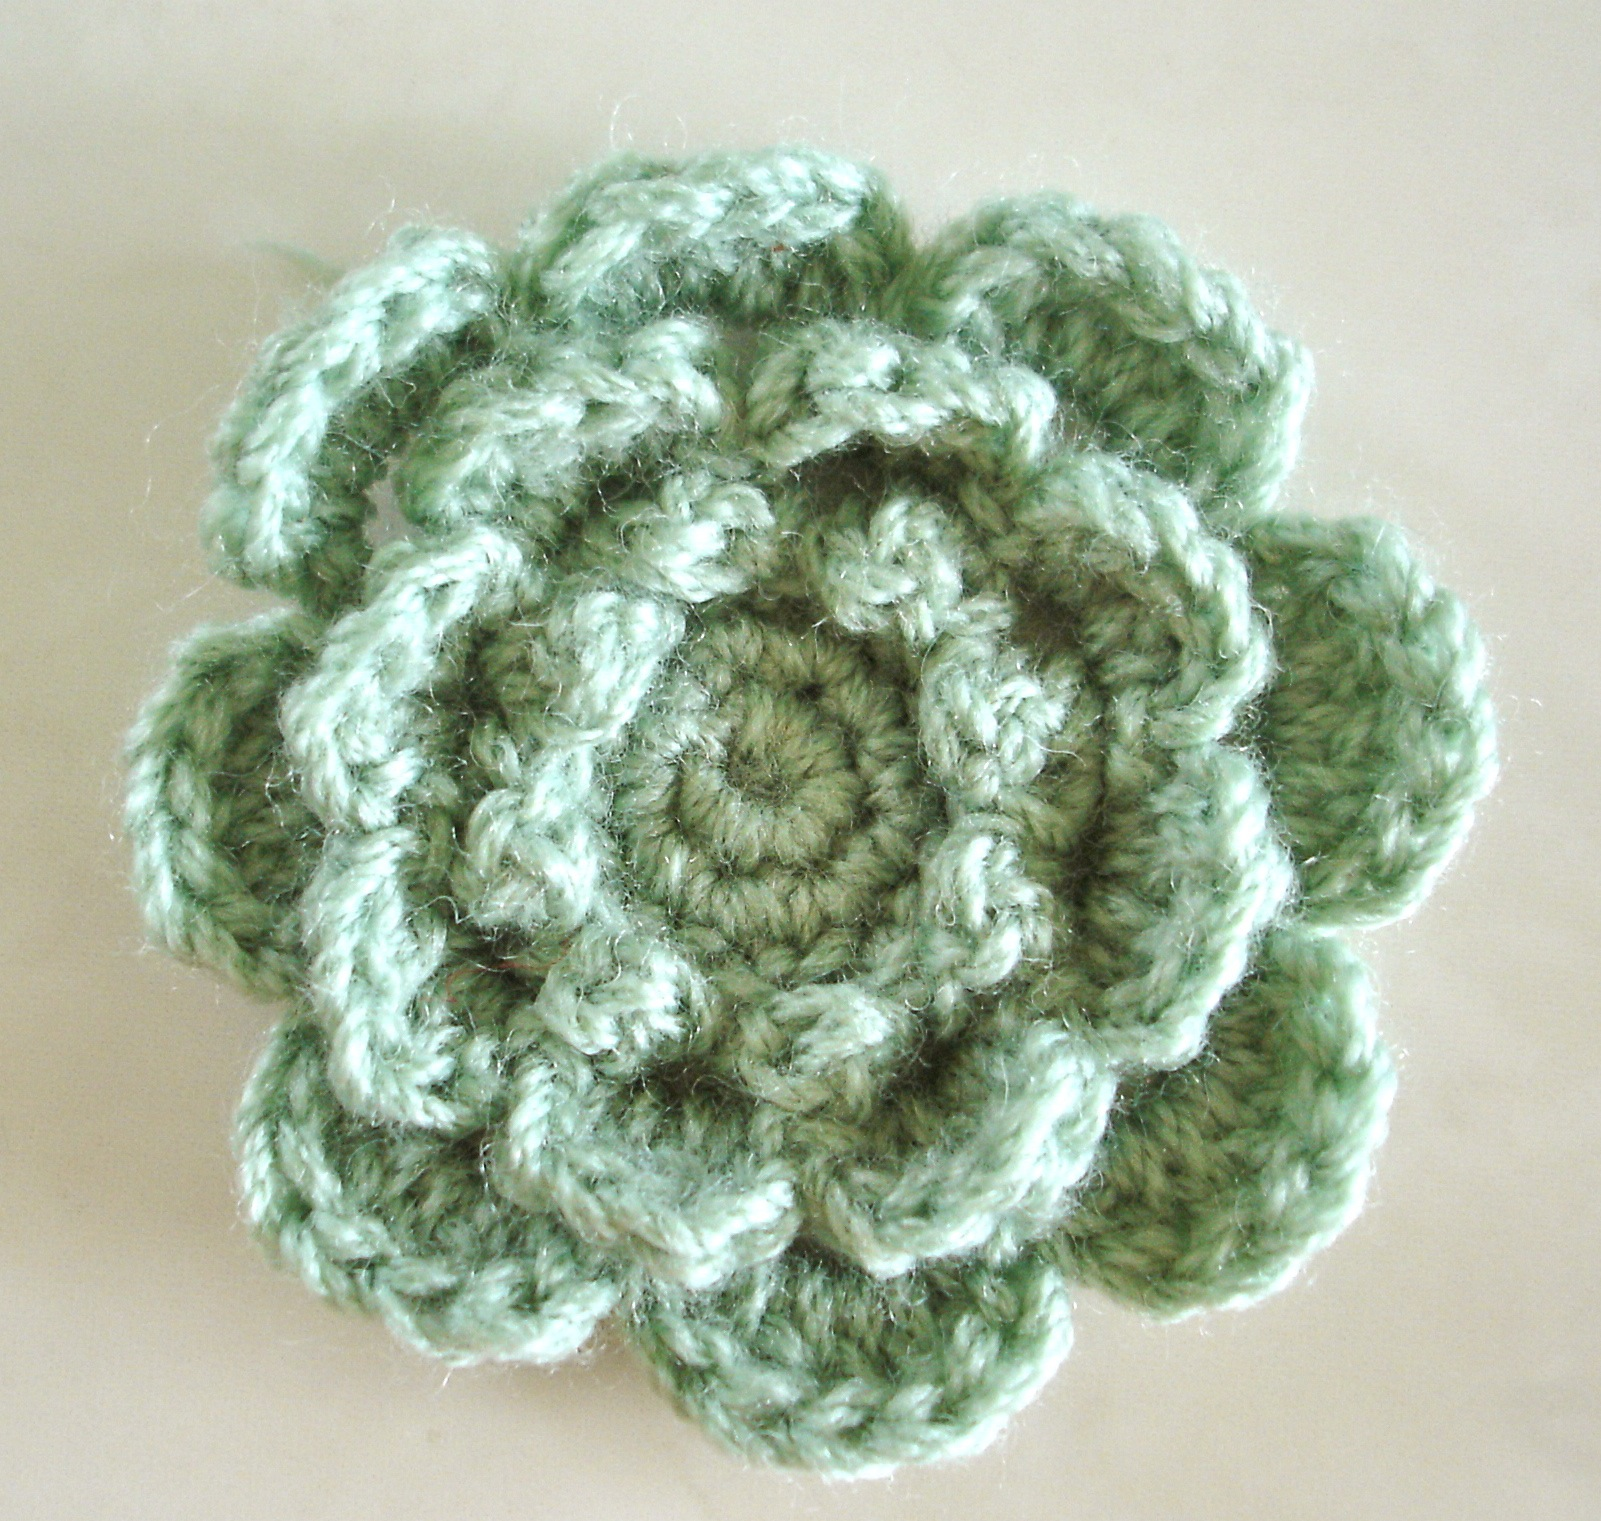 Its interesting the way new patterns take form. For amigurumis, I ...